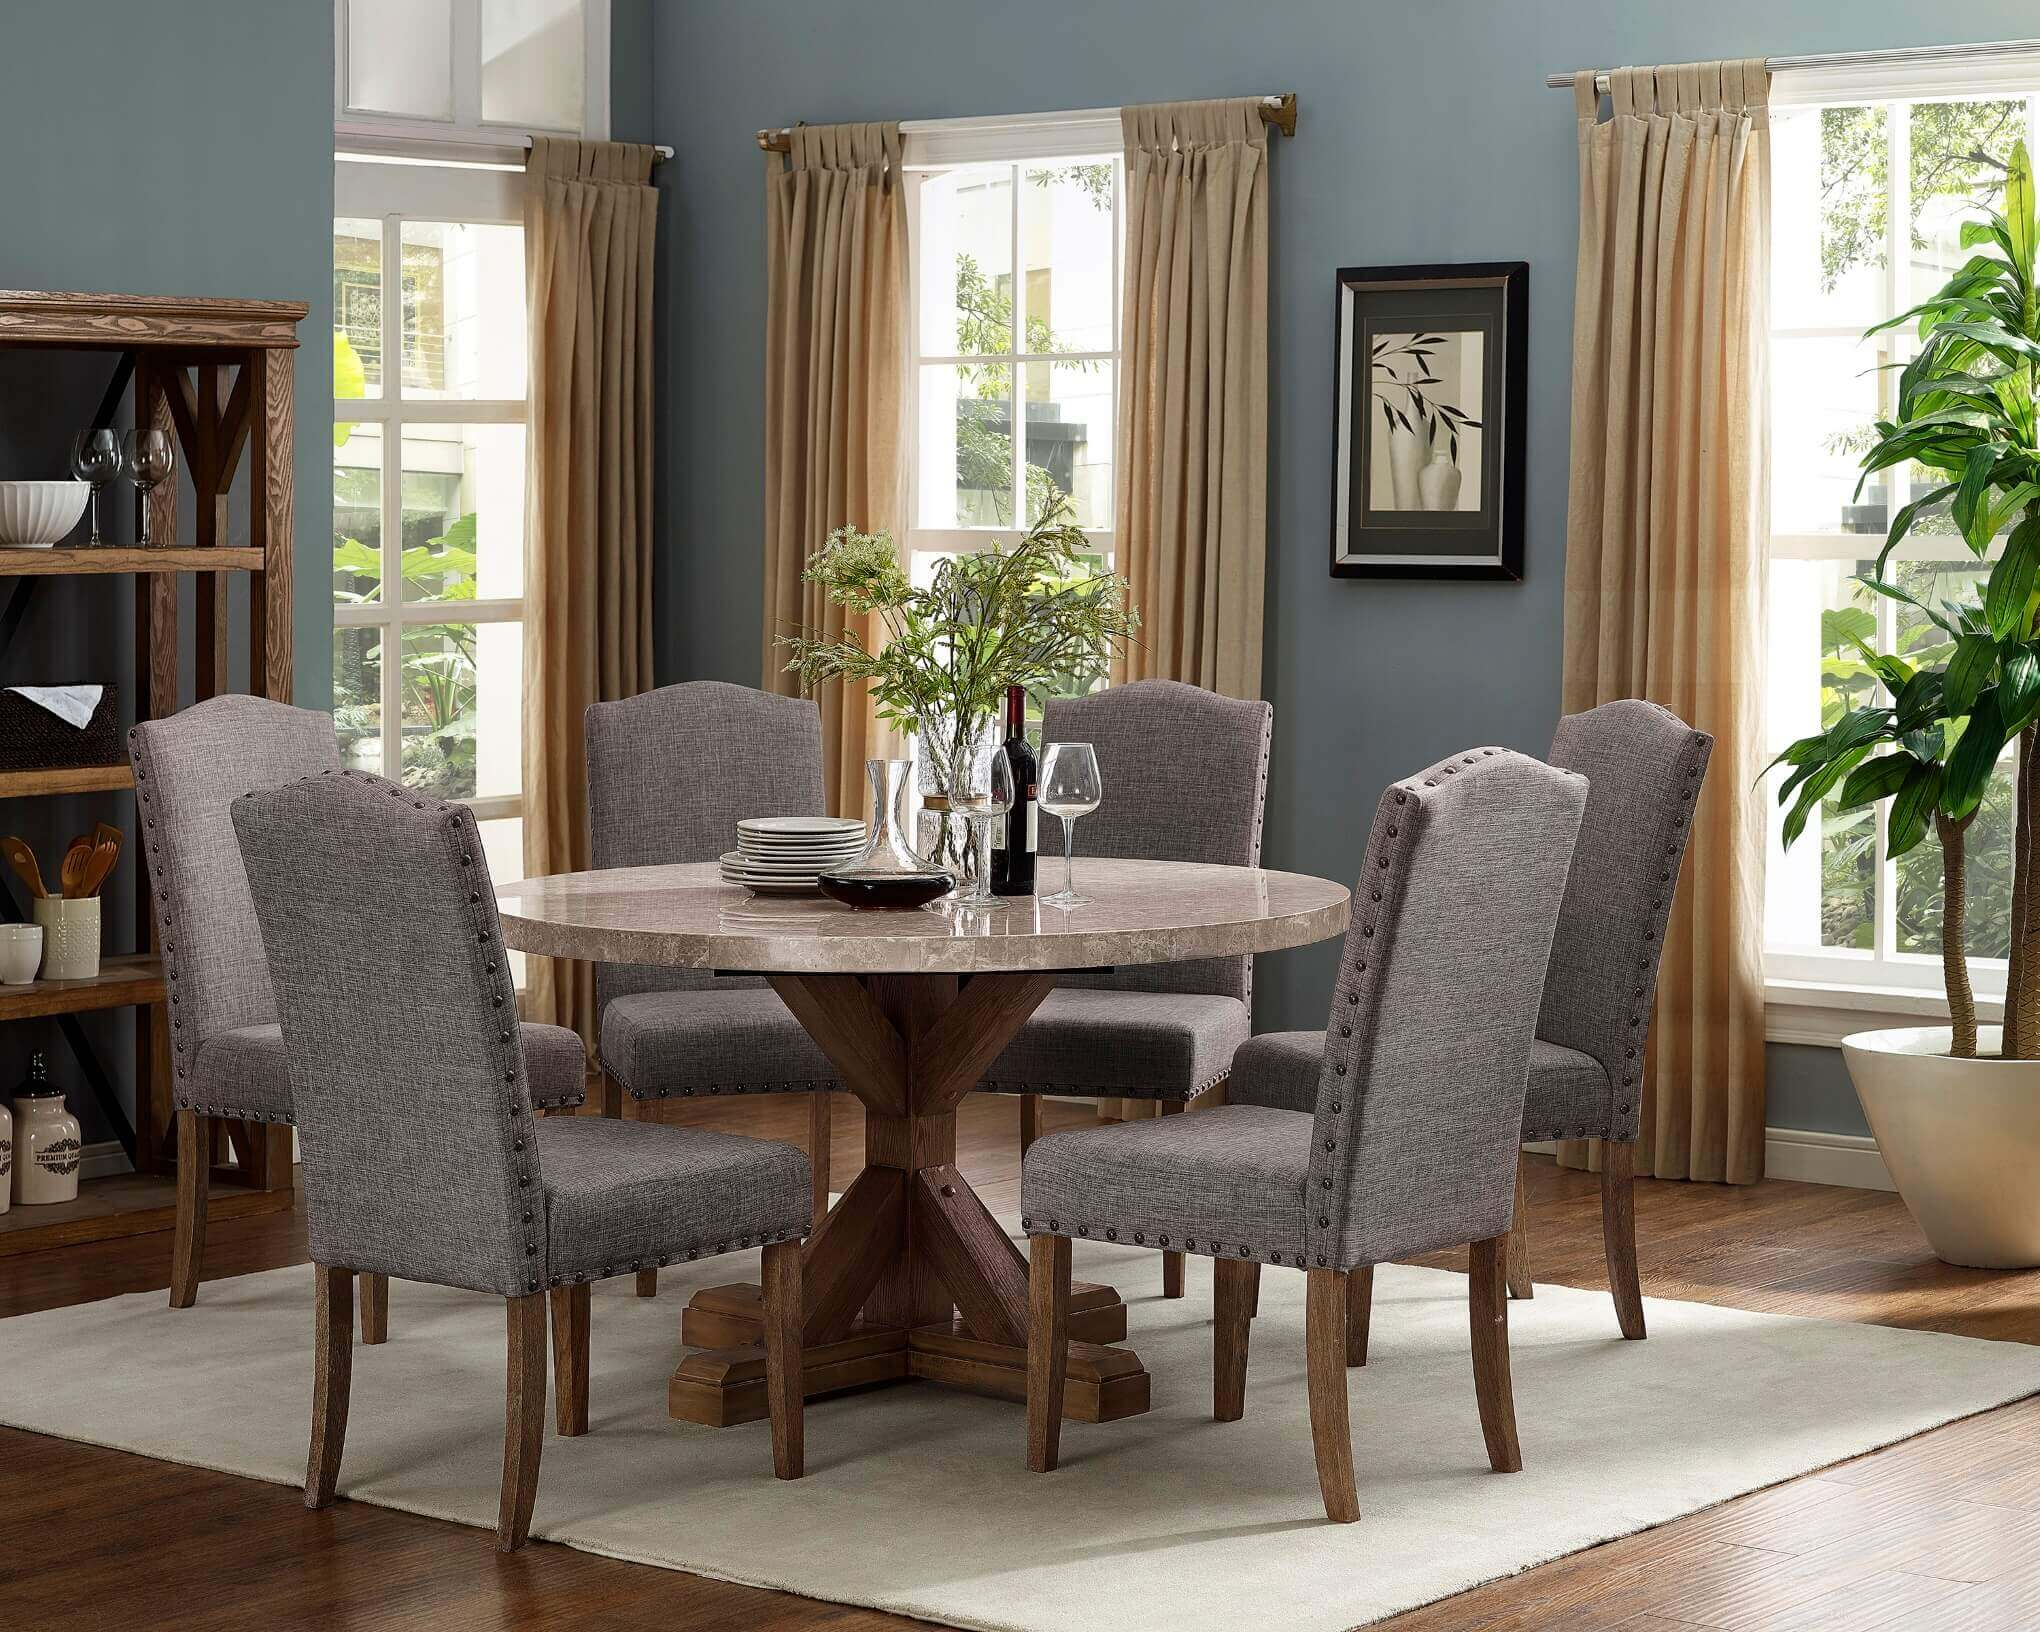 Vesper Round Marble Dining Room Set, Round Marble Table Dining Set